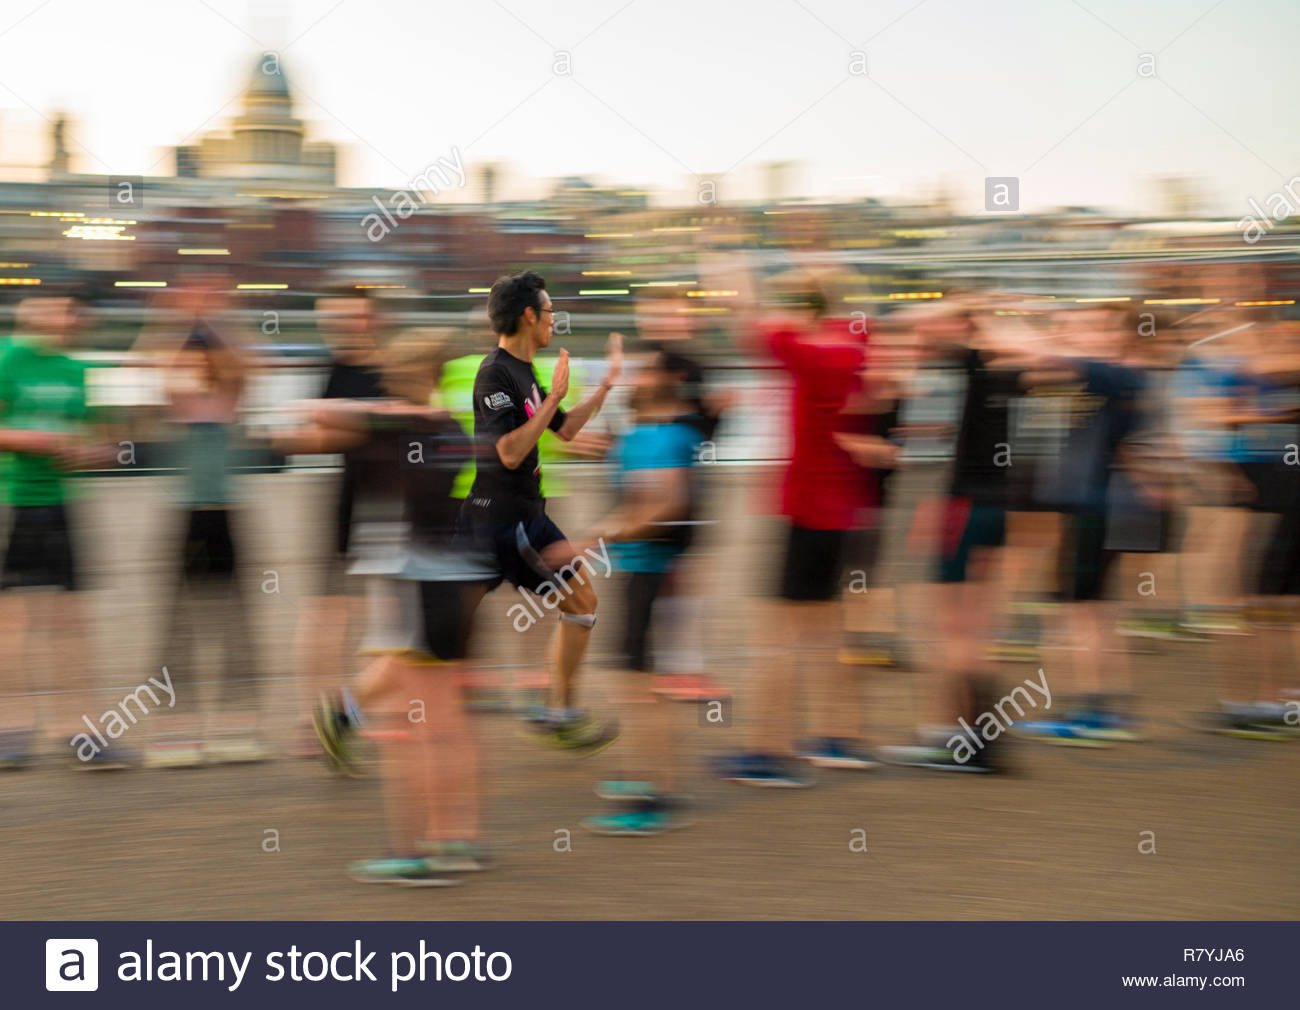 Male runner getting high-fives as she runs a friendly gauntlet of fellow runners, South Bank, Southwark, London, England, United Kingdom - Stock Image